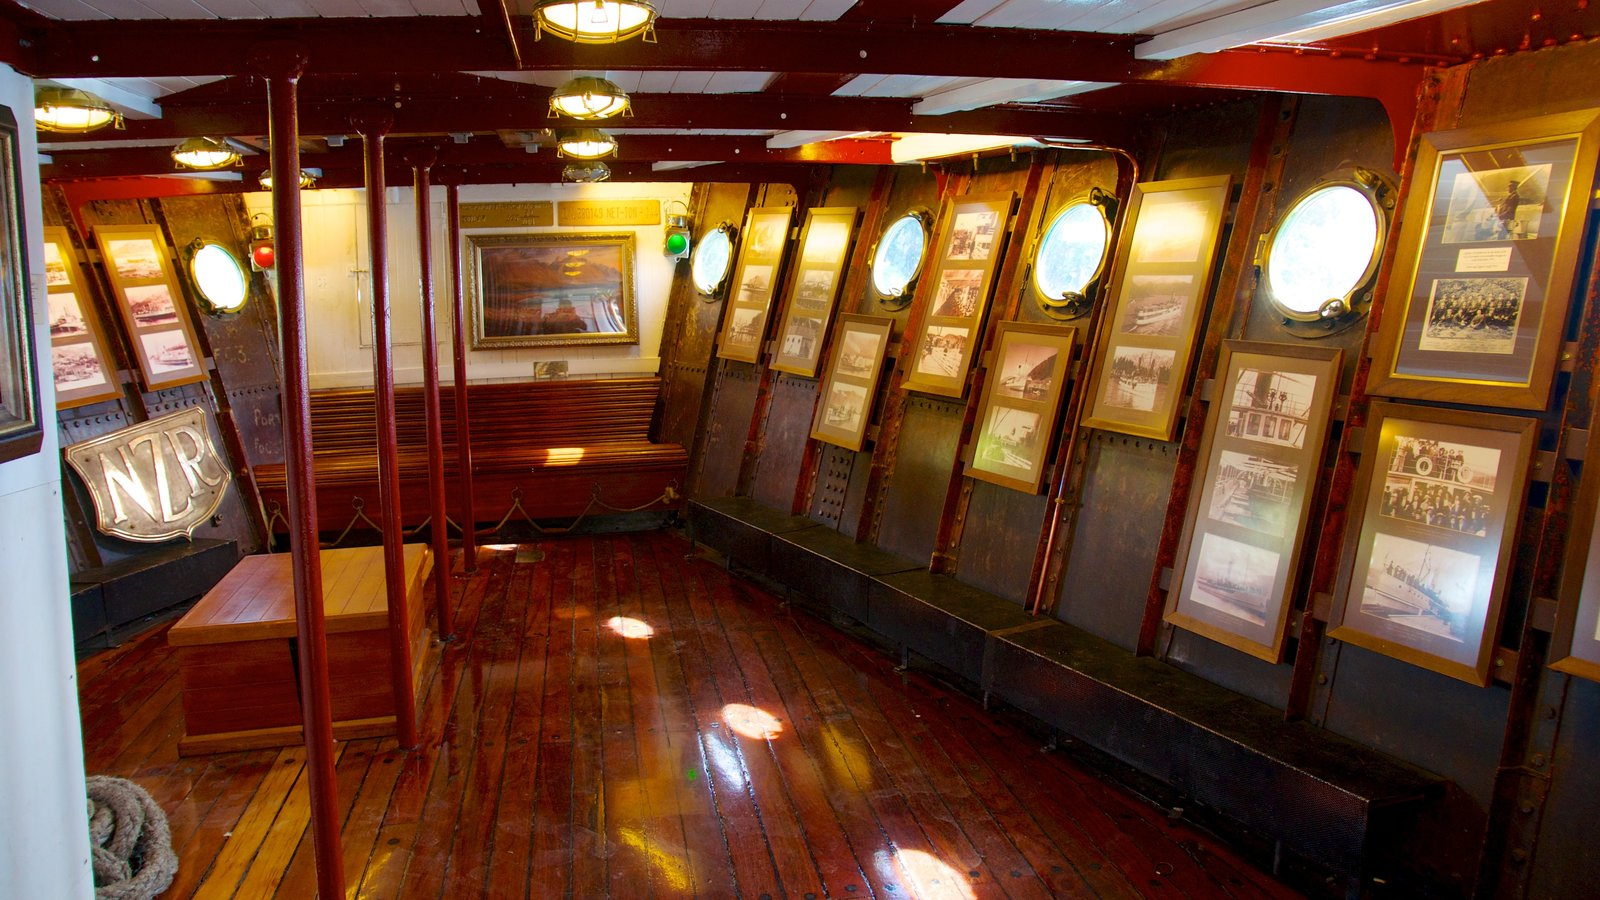 TSS Earnslaw Steamship featuring interior views